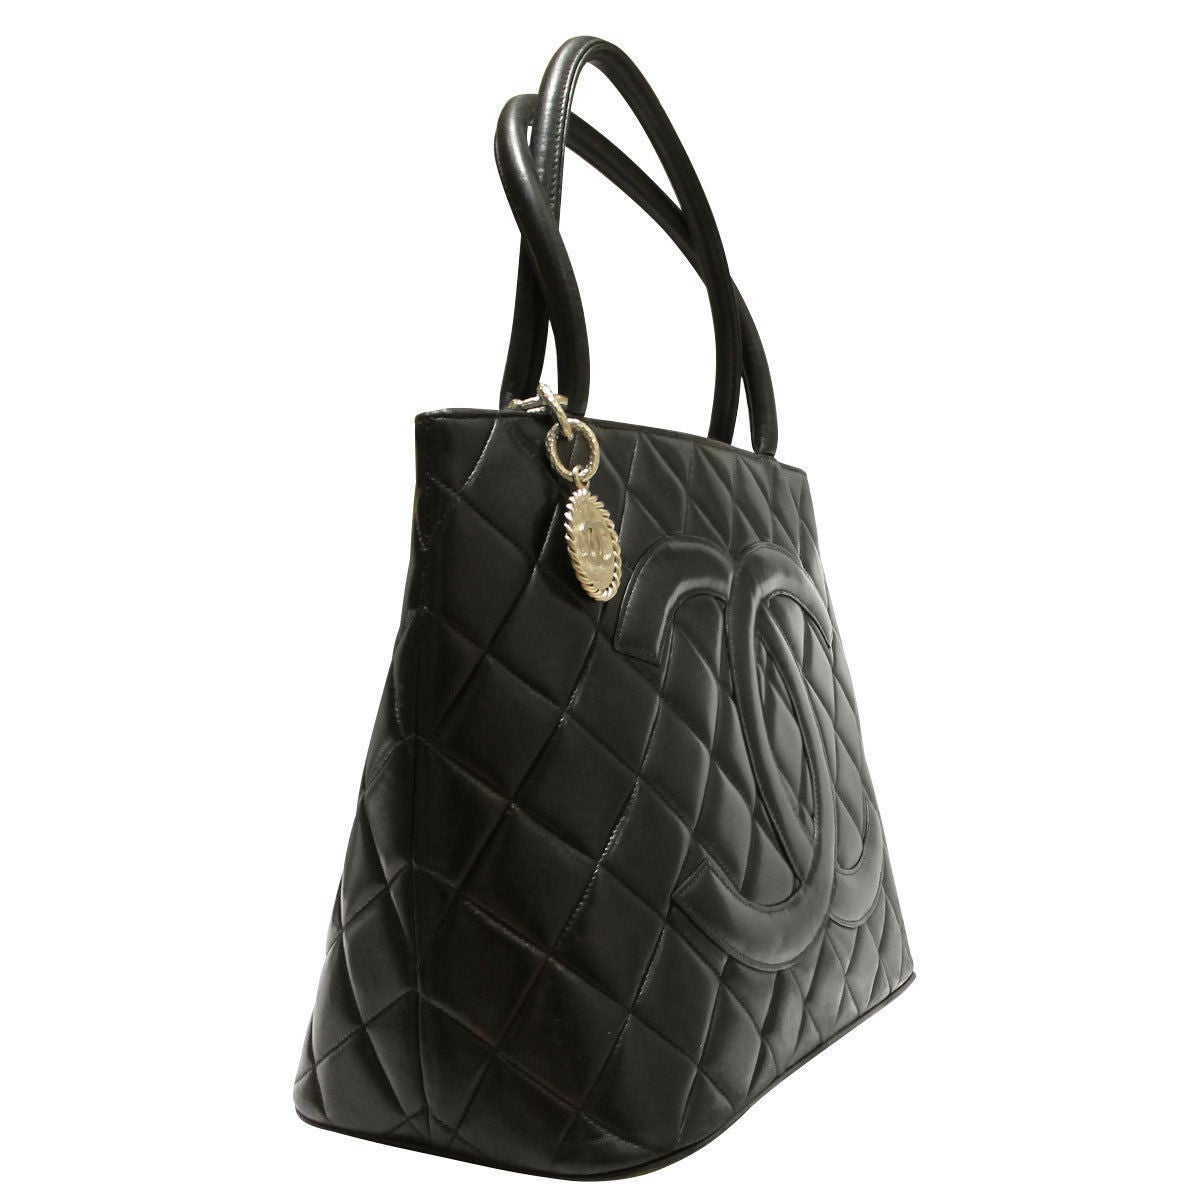 55c9471d72f6 Chanel Lambskin Medallion SHW Tote Bag Circa 2000-2002 In Good Condition  For Sale In